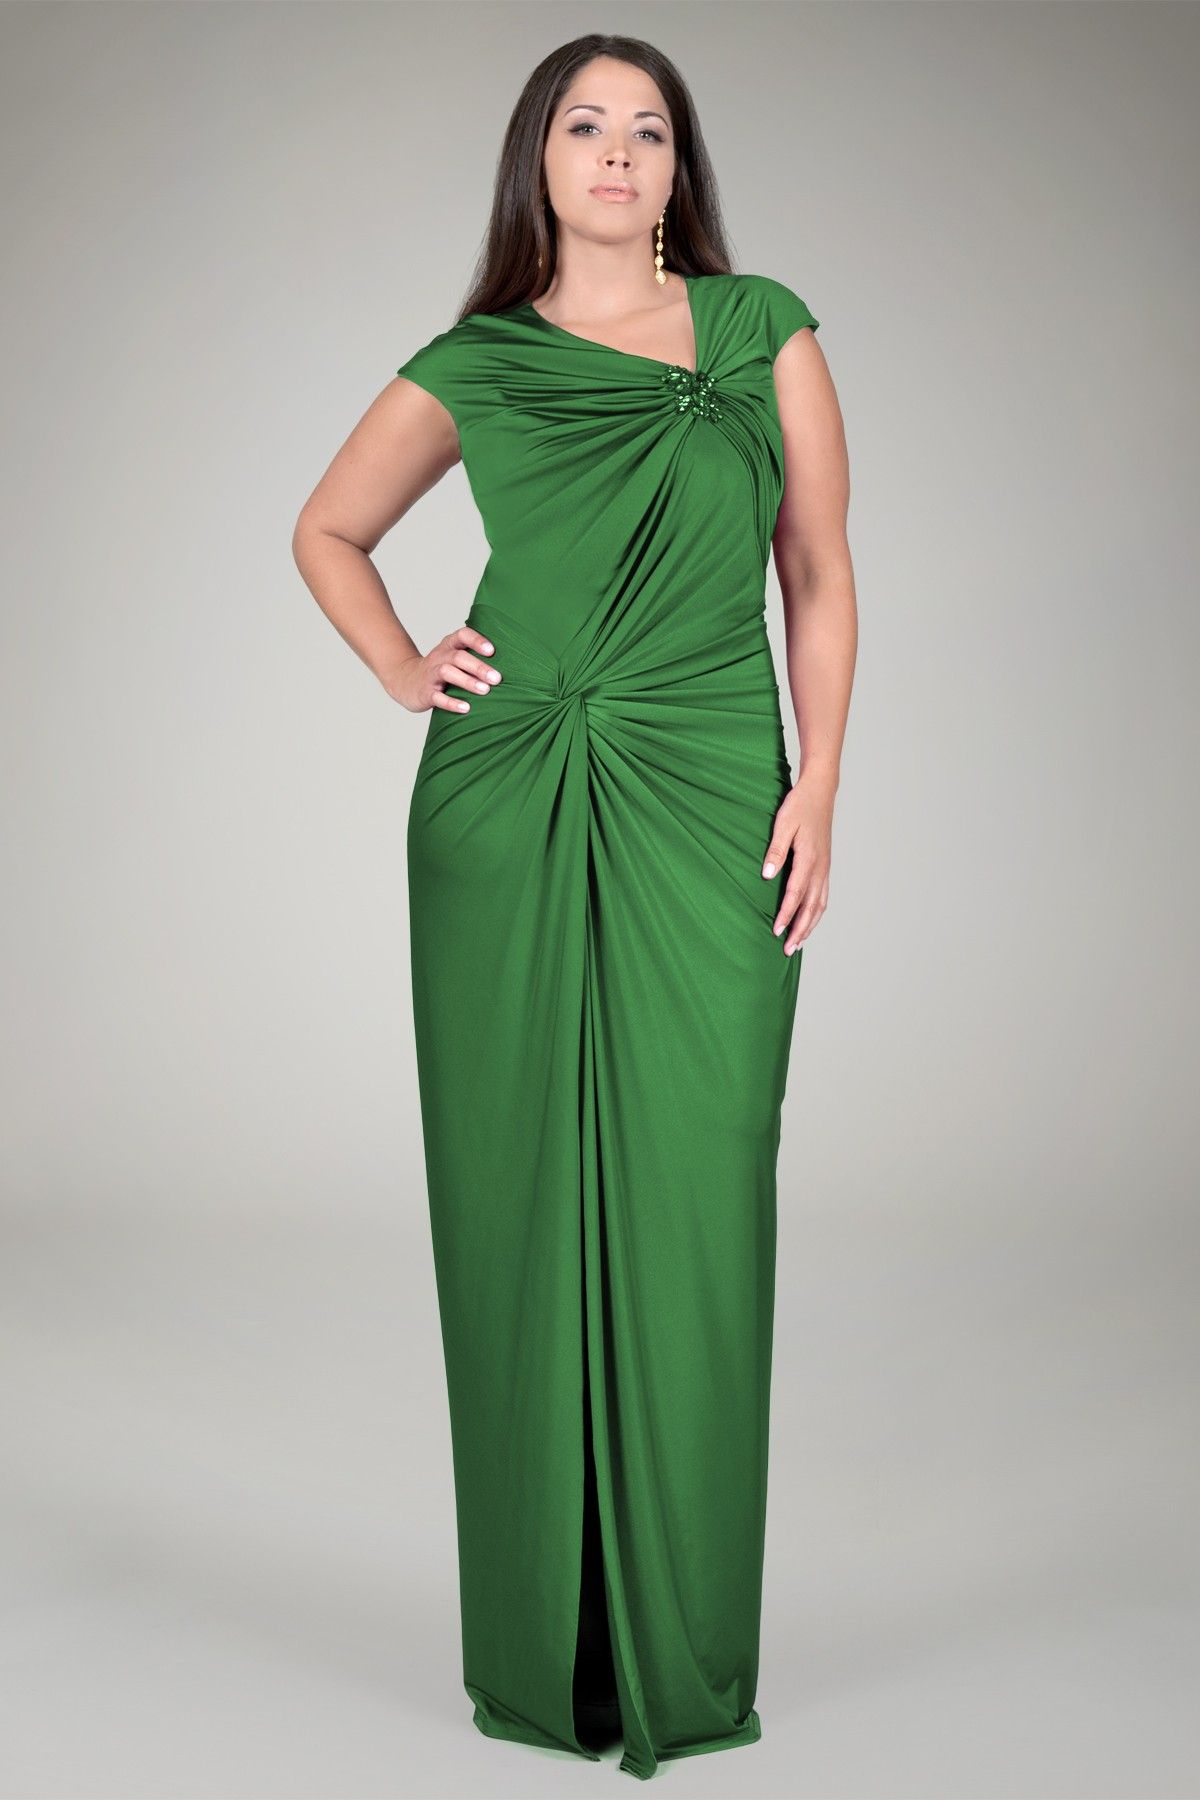 Jersey Draped Plus Size Evening Gown | Green Plus Size Evening Wear ...